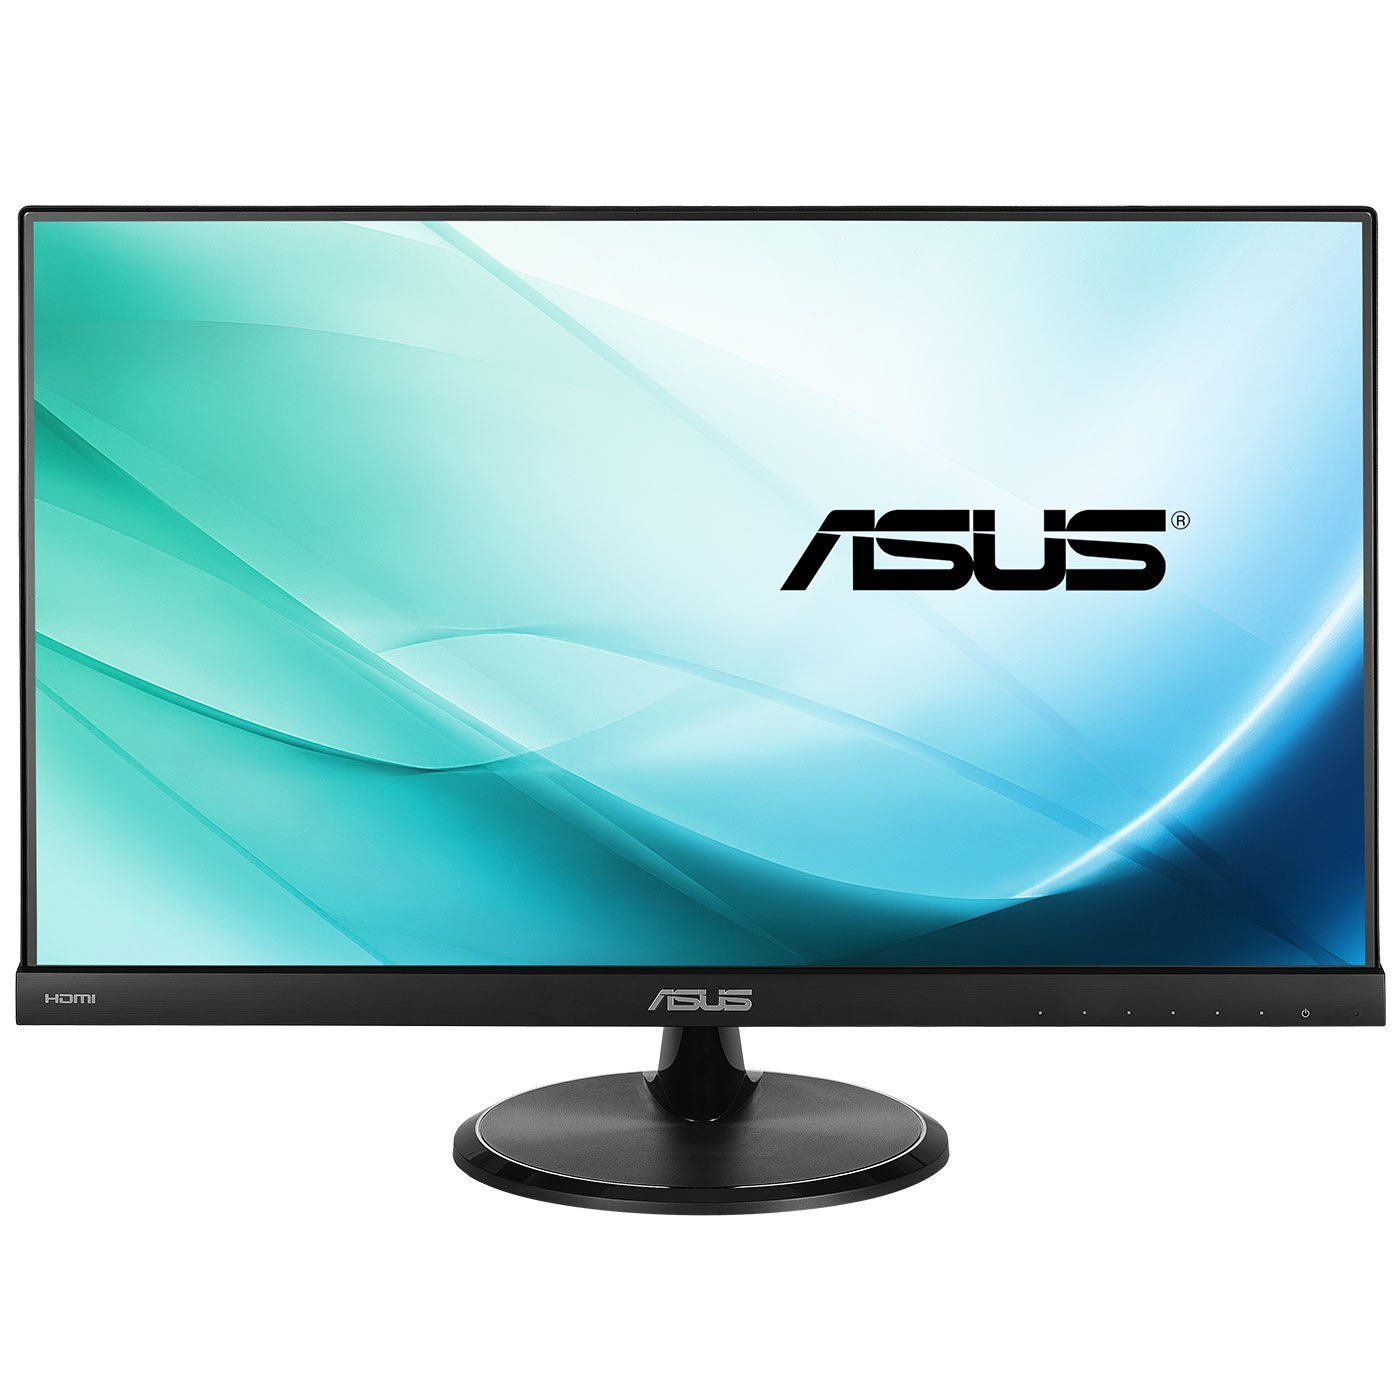 ASUS VC239H Monitor (Black) for £110.46